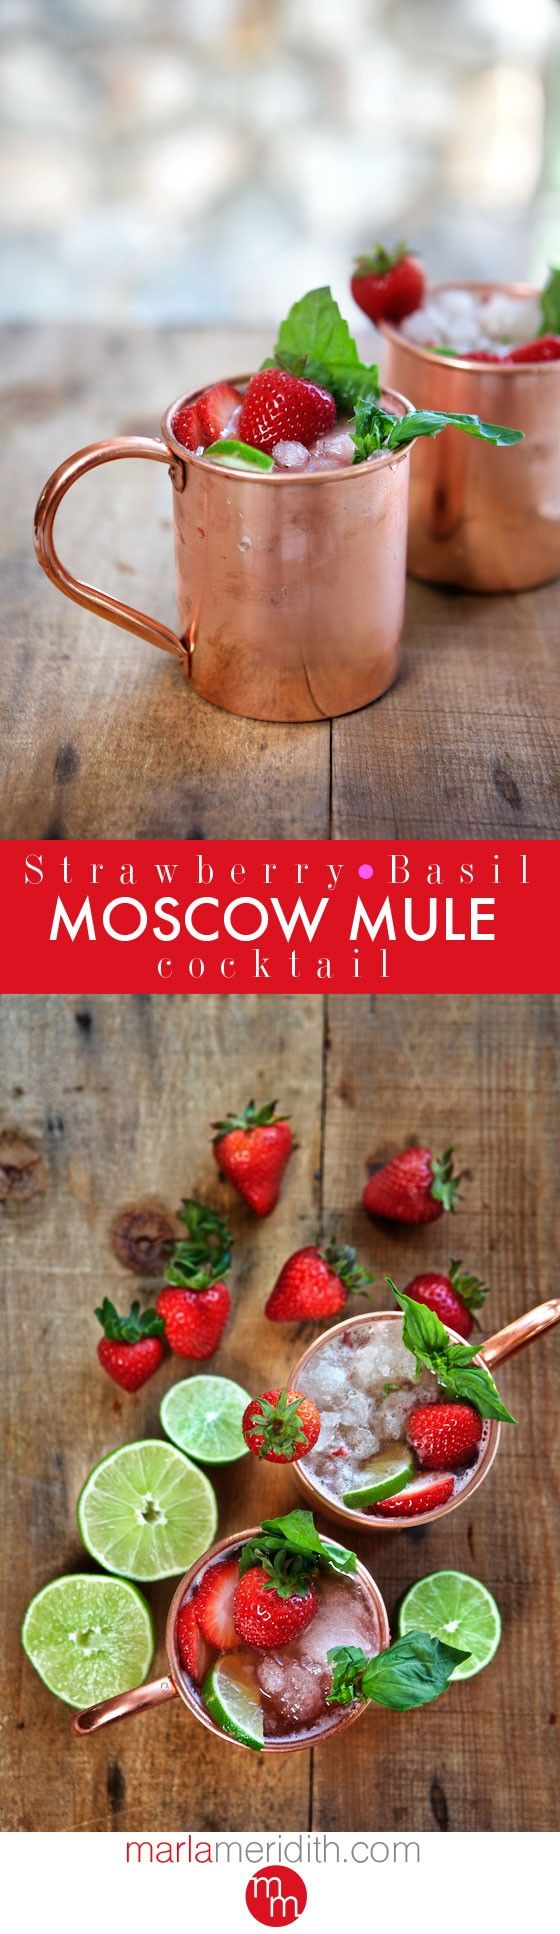 Strawberry Basil Moscow Mule Cocktail   The ultimate summer libation! MarlaMeridith.com ( @marlameridith )